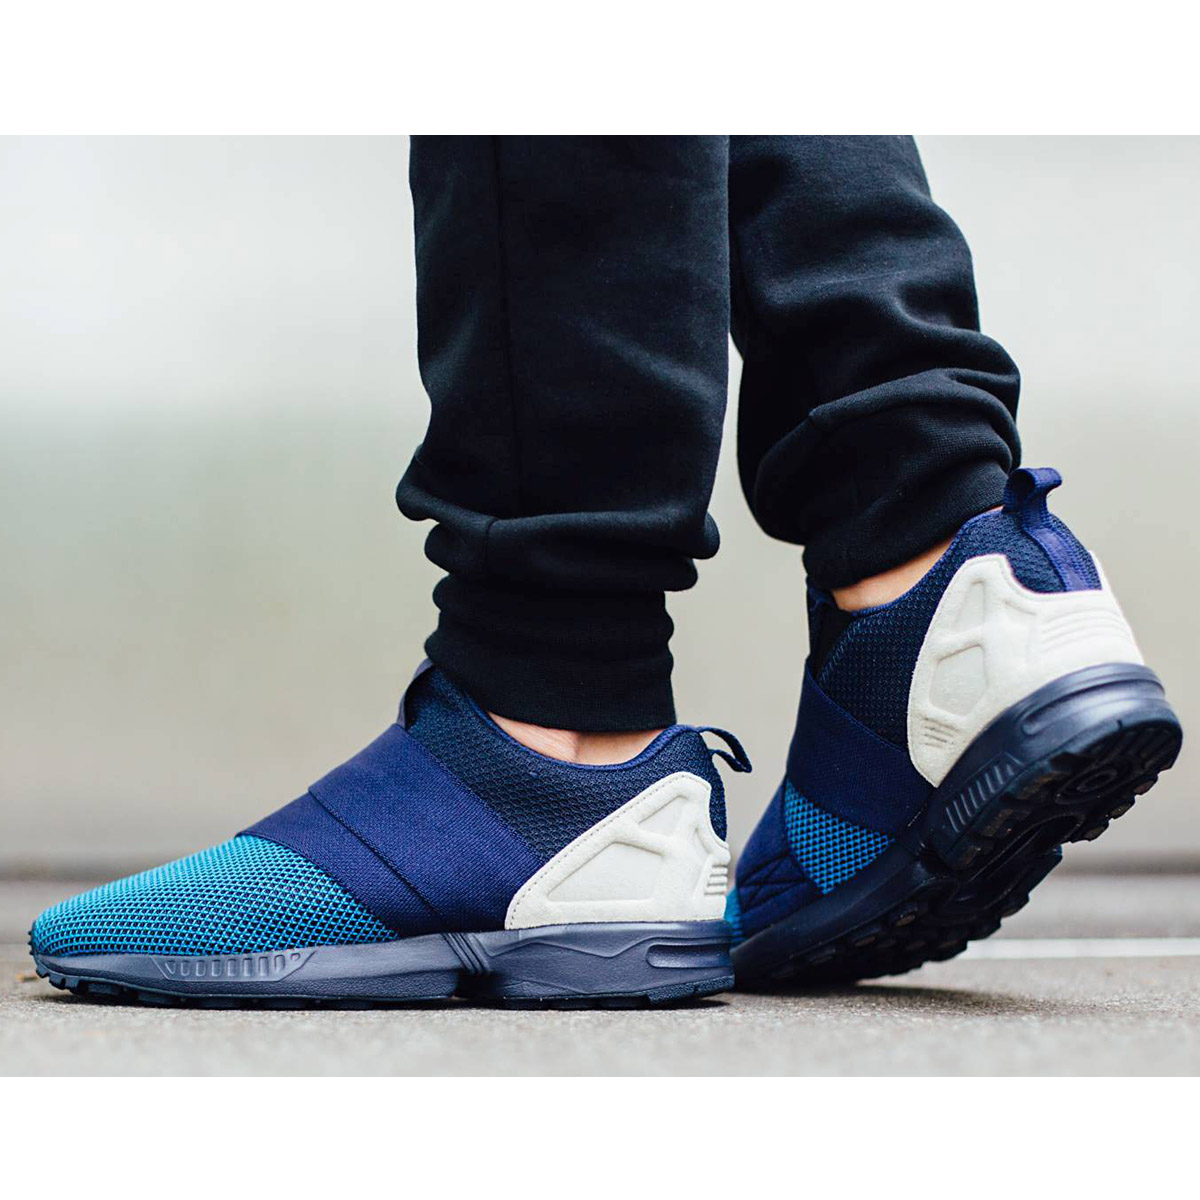 adidas originals zx flux slip on blau herren sneaker schuhe turnschuhe slipper ebay. Black Bedroom Furniture Sets. Home Design Ideas